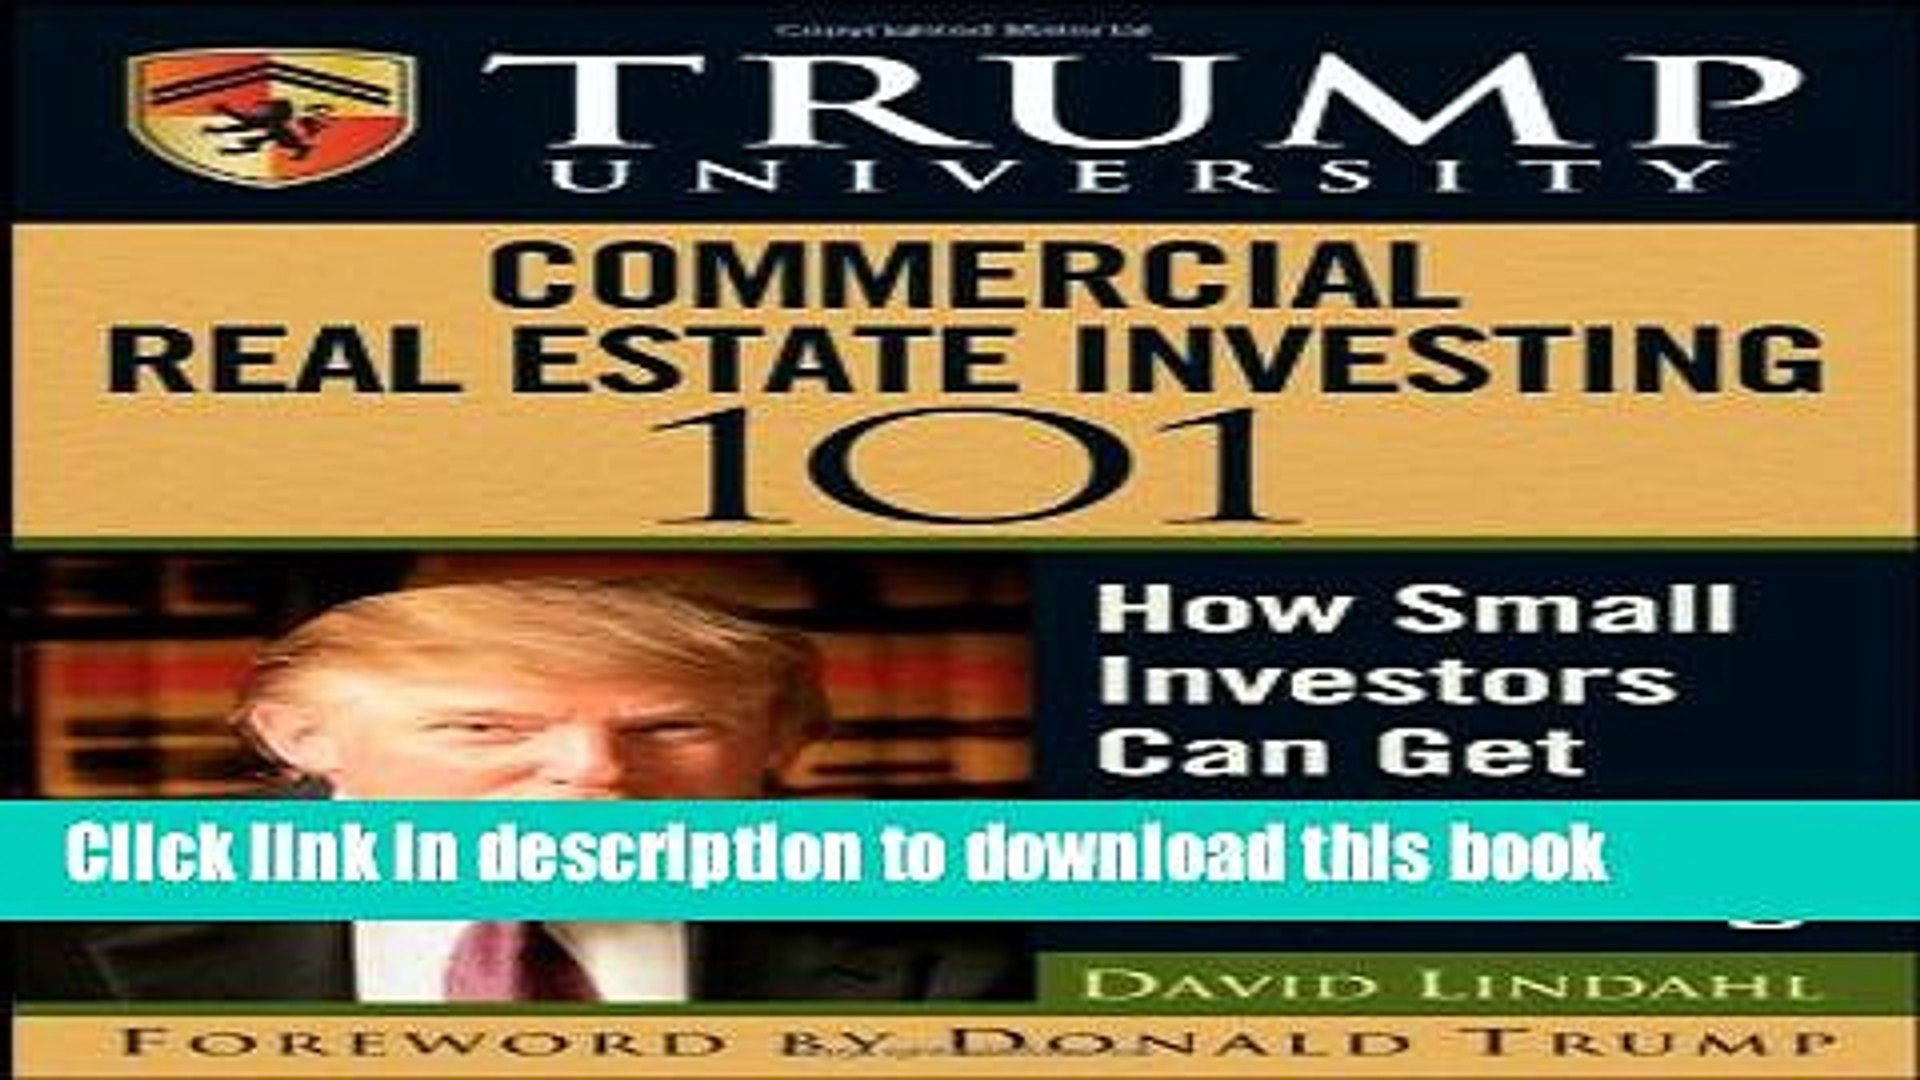 Read Books Trump University Commercial Real Estate 101: How Small Investors Can Get Started and